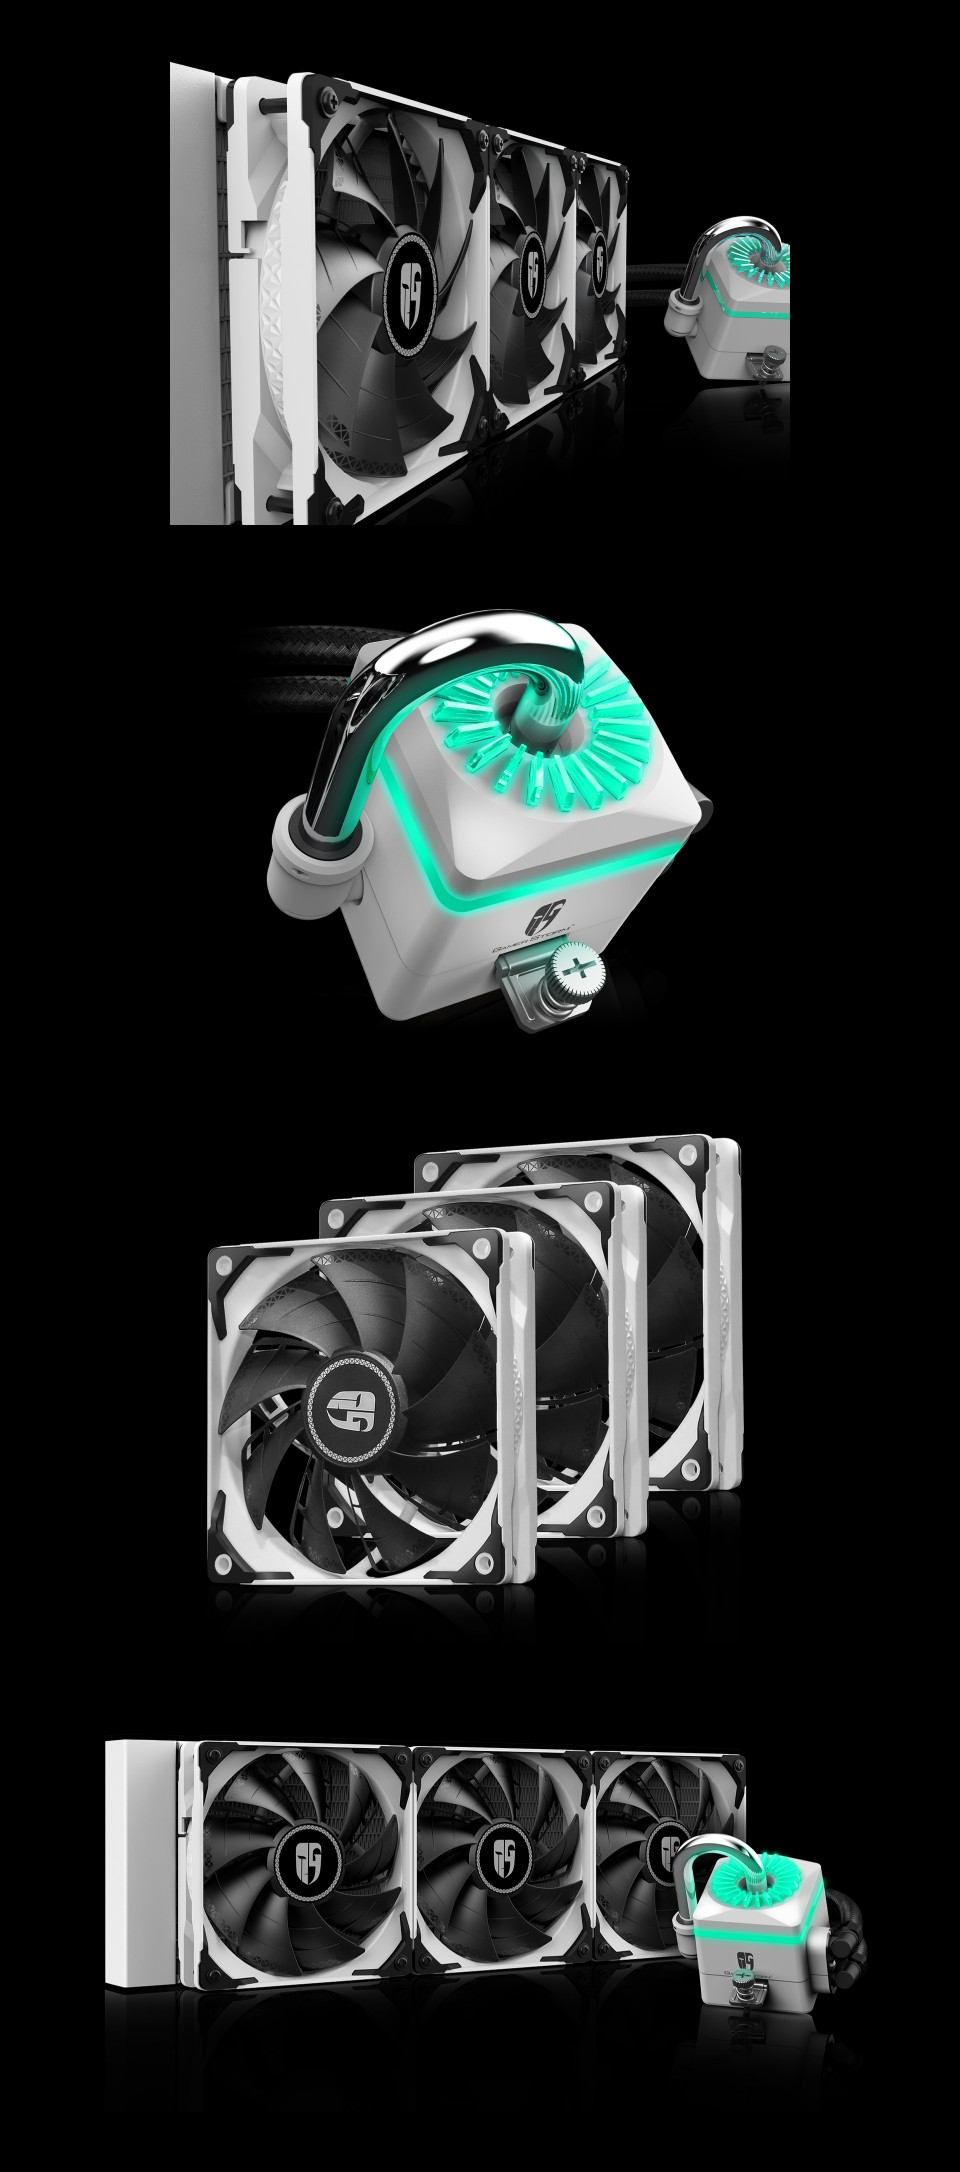 Deepcool Gamer Storm Captain 360X AIO Liquid CPU Cooler White product